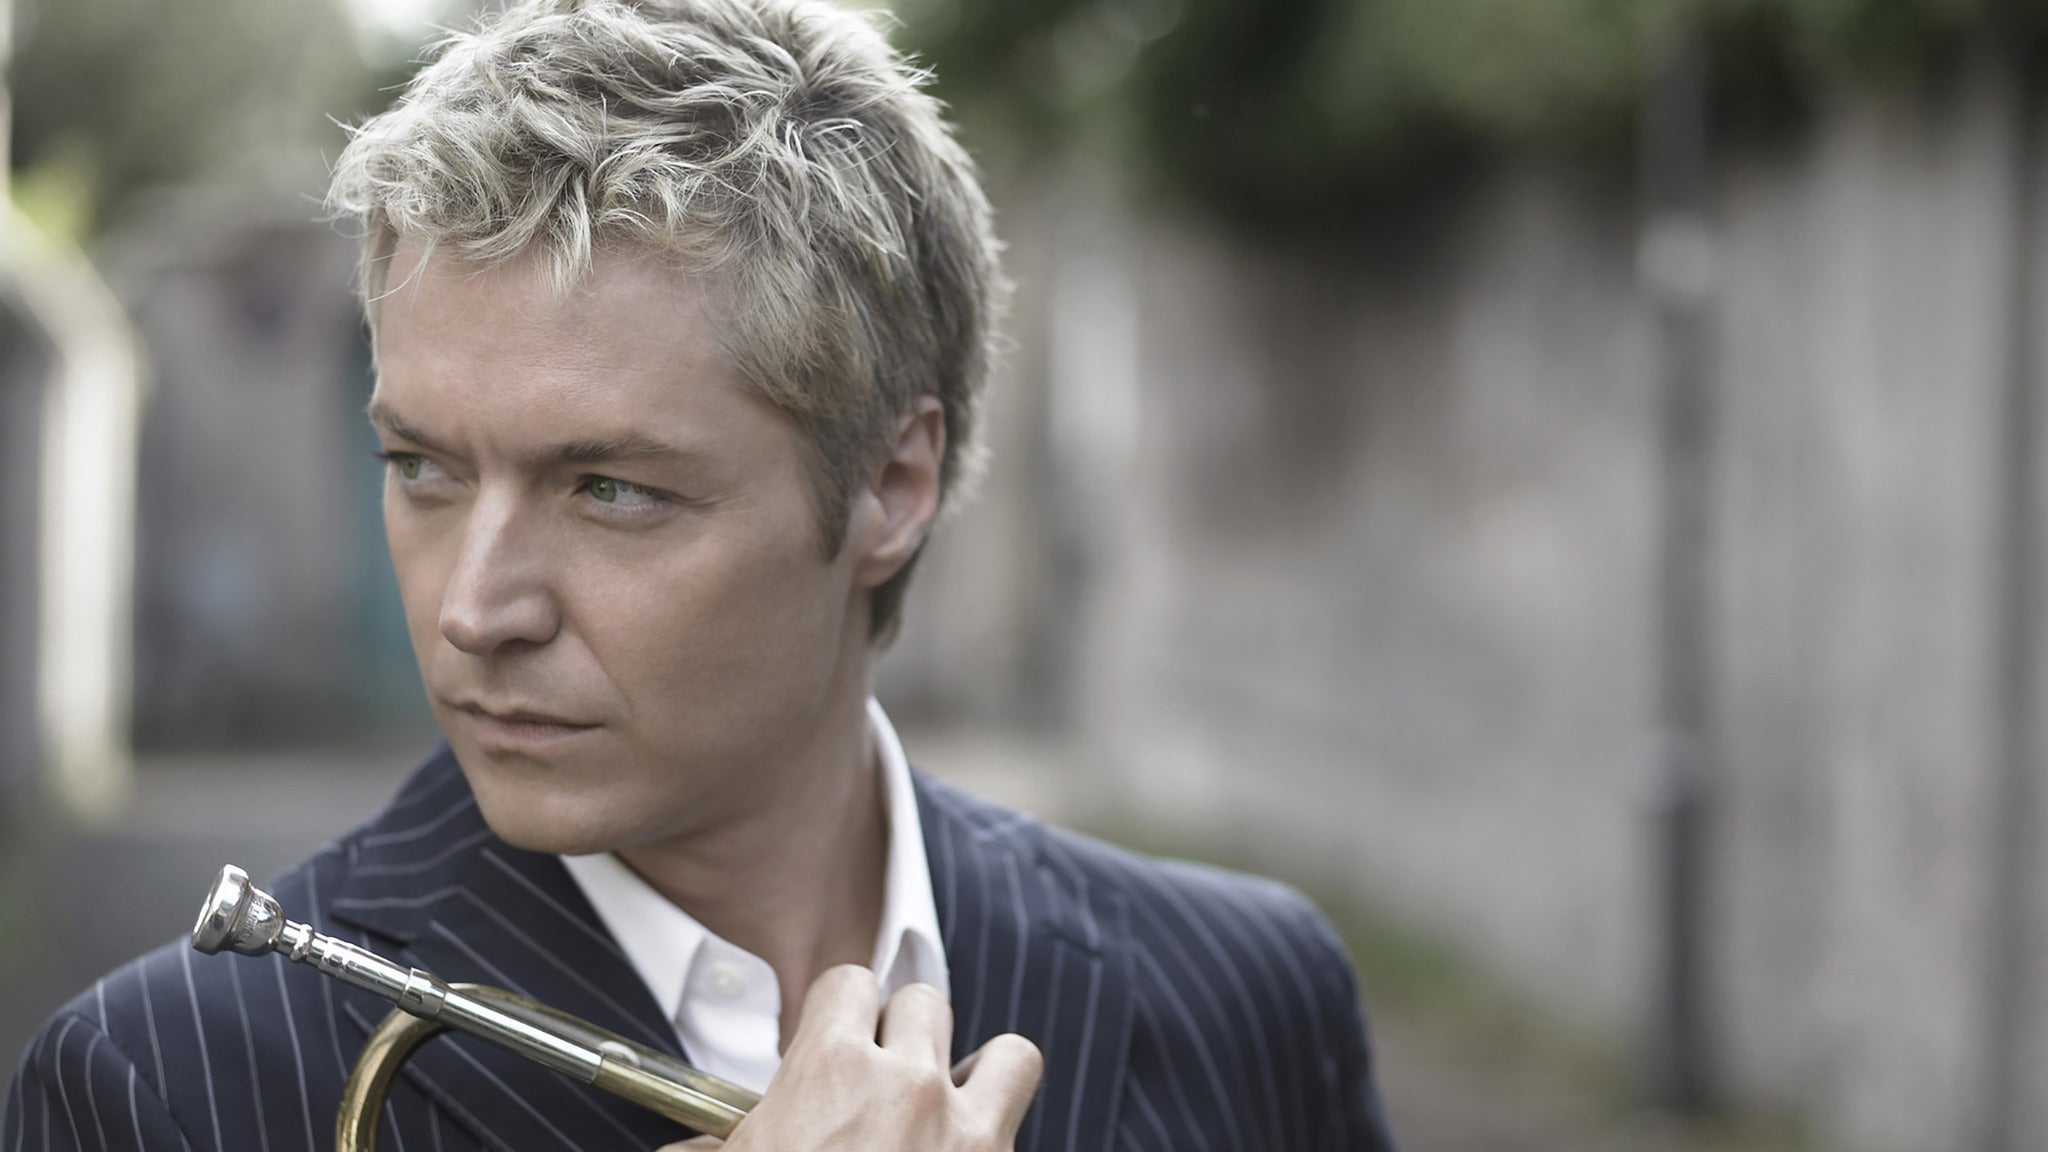 Chris Botti at McCallum Theatre - Palm Desert, CA 92260